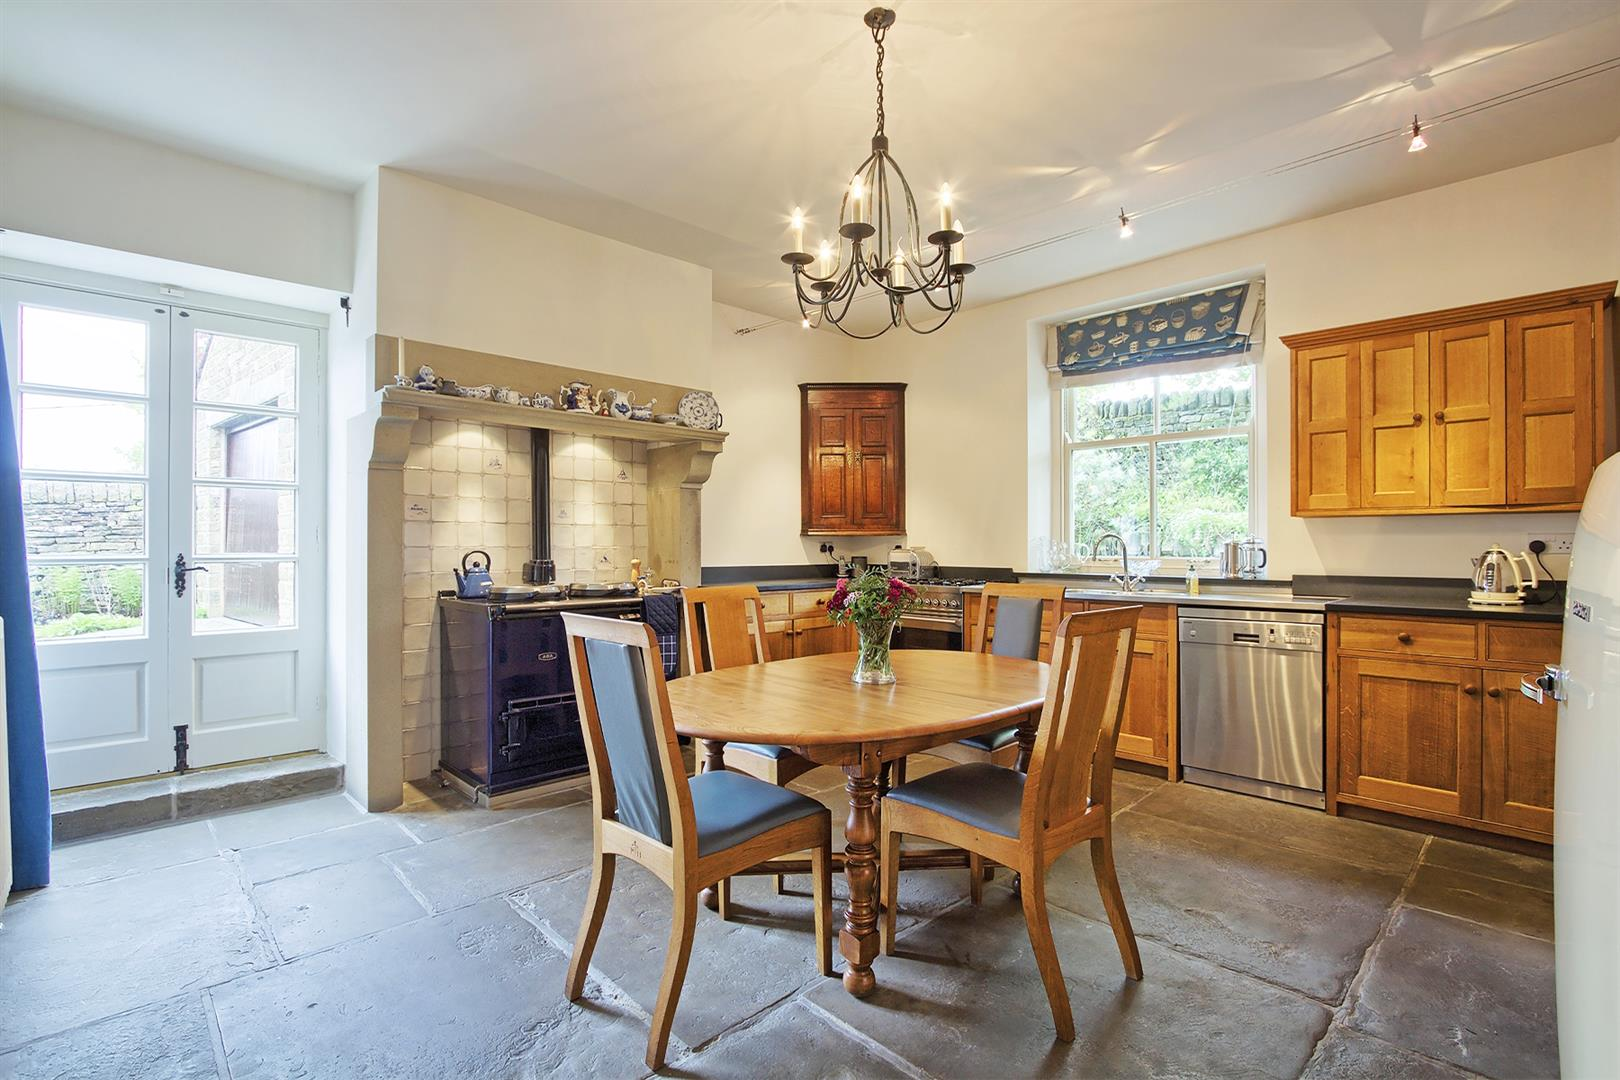 5 bedroom detached house For Sale in Bolton - kitchen.png.